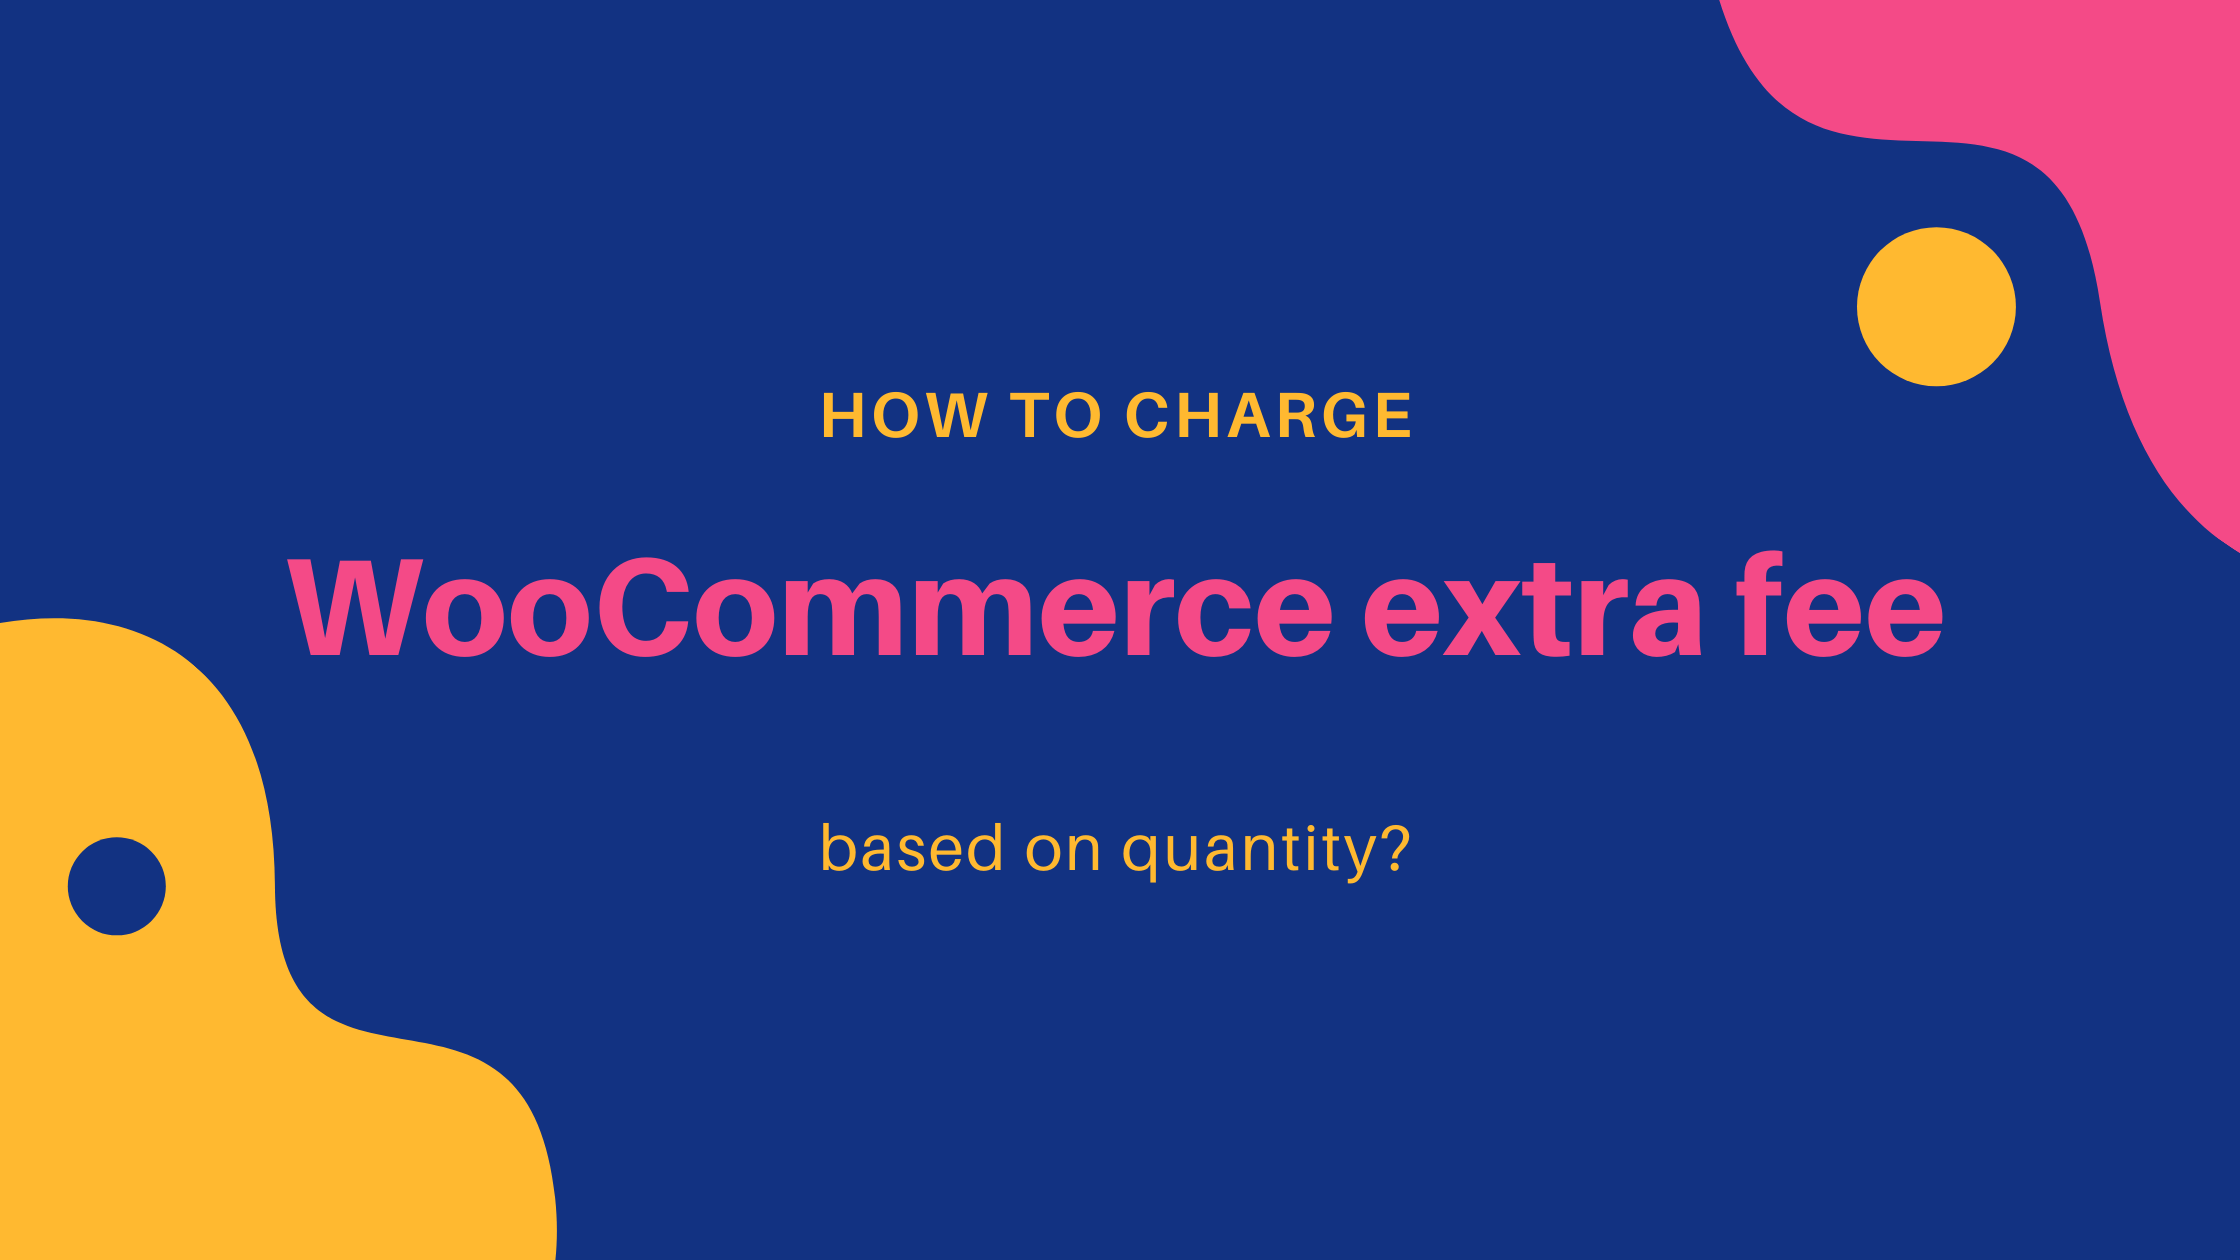 How to charge WooCommerce extra fee based on quantity?